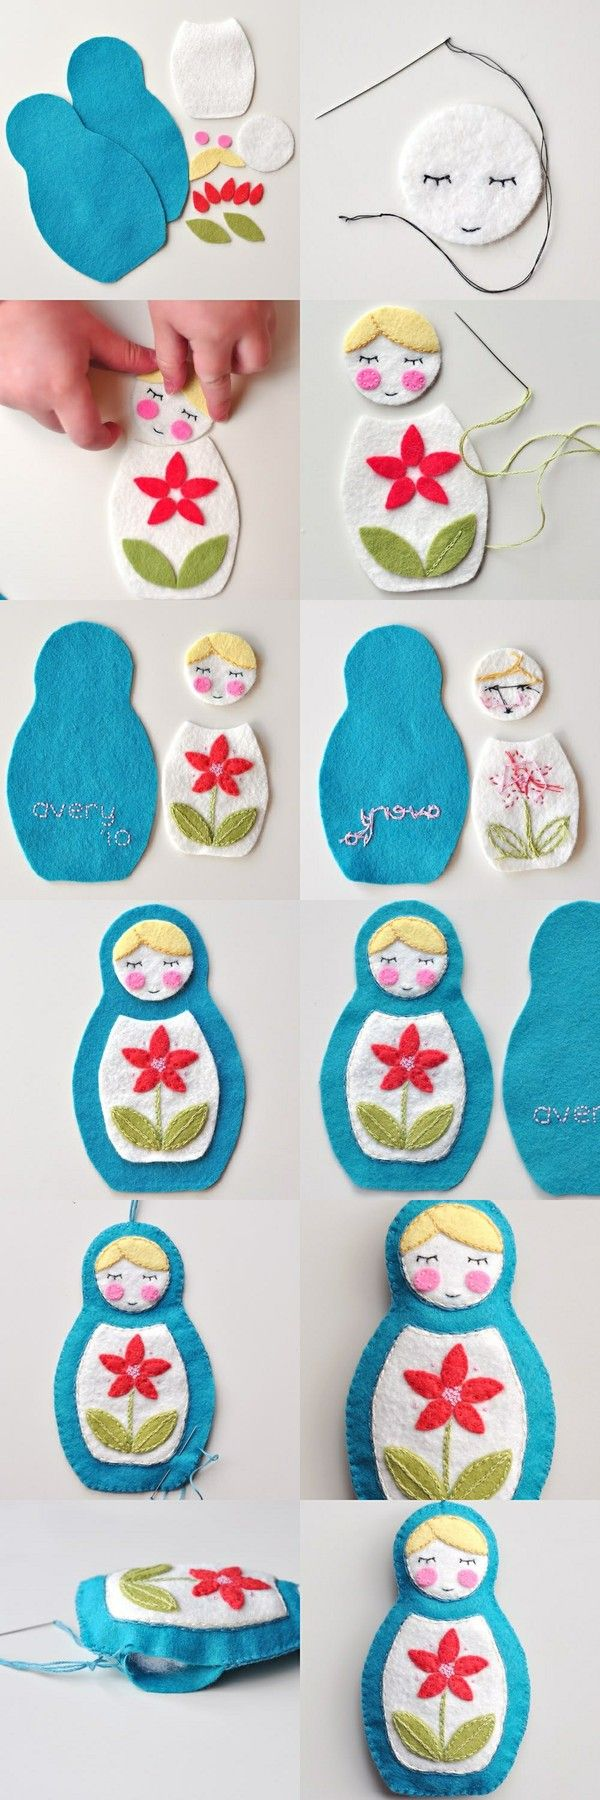 DIY Felt Matryoshka - FREE Tutorial